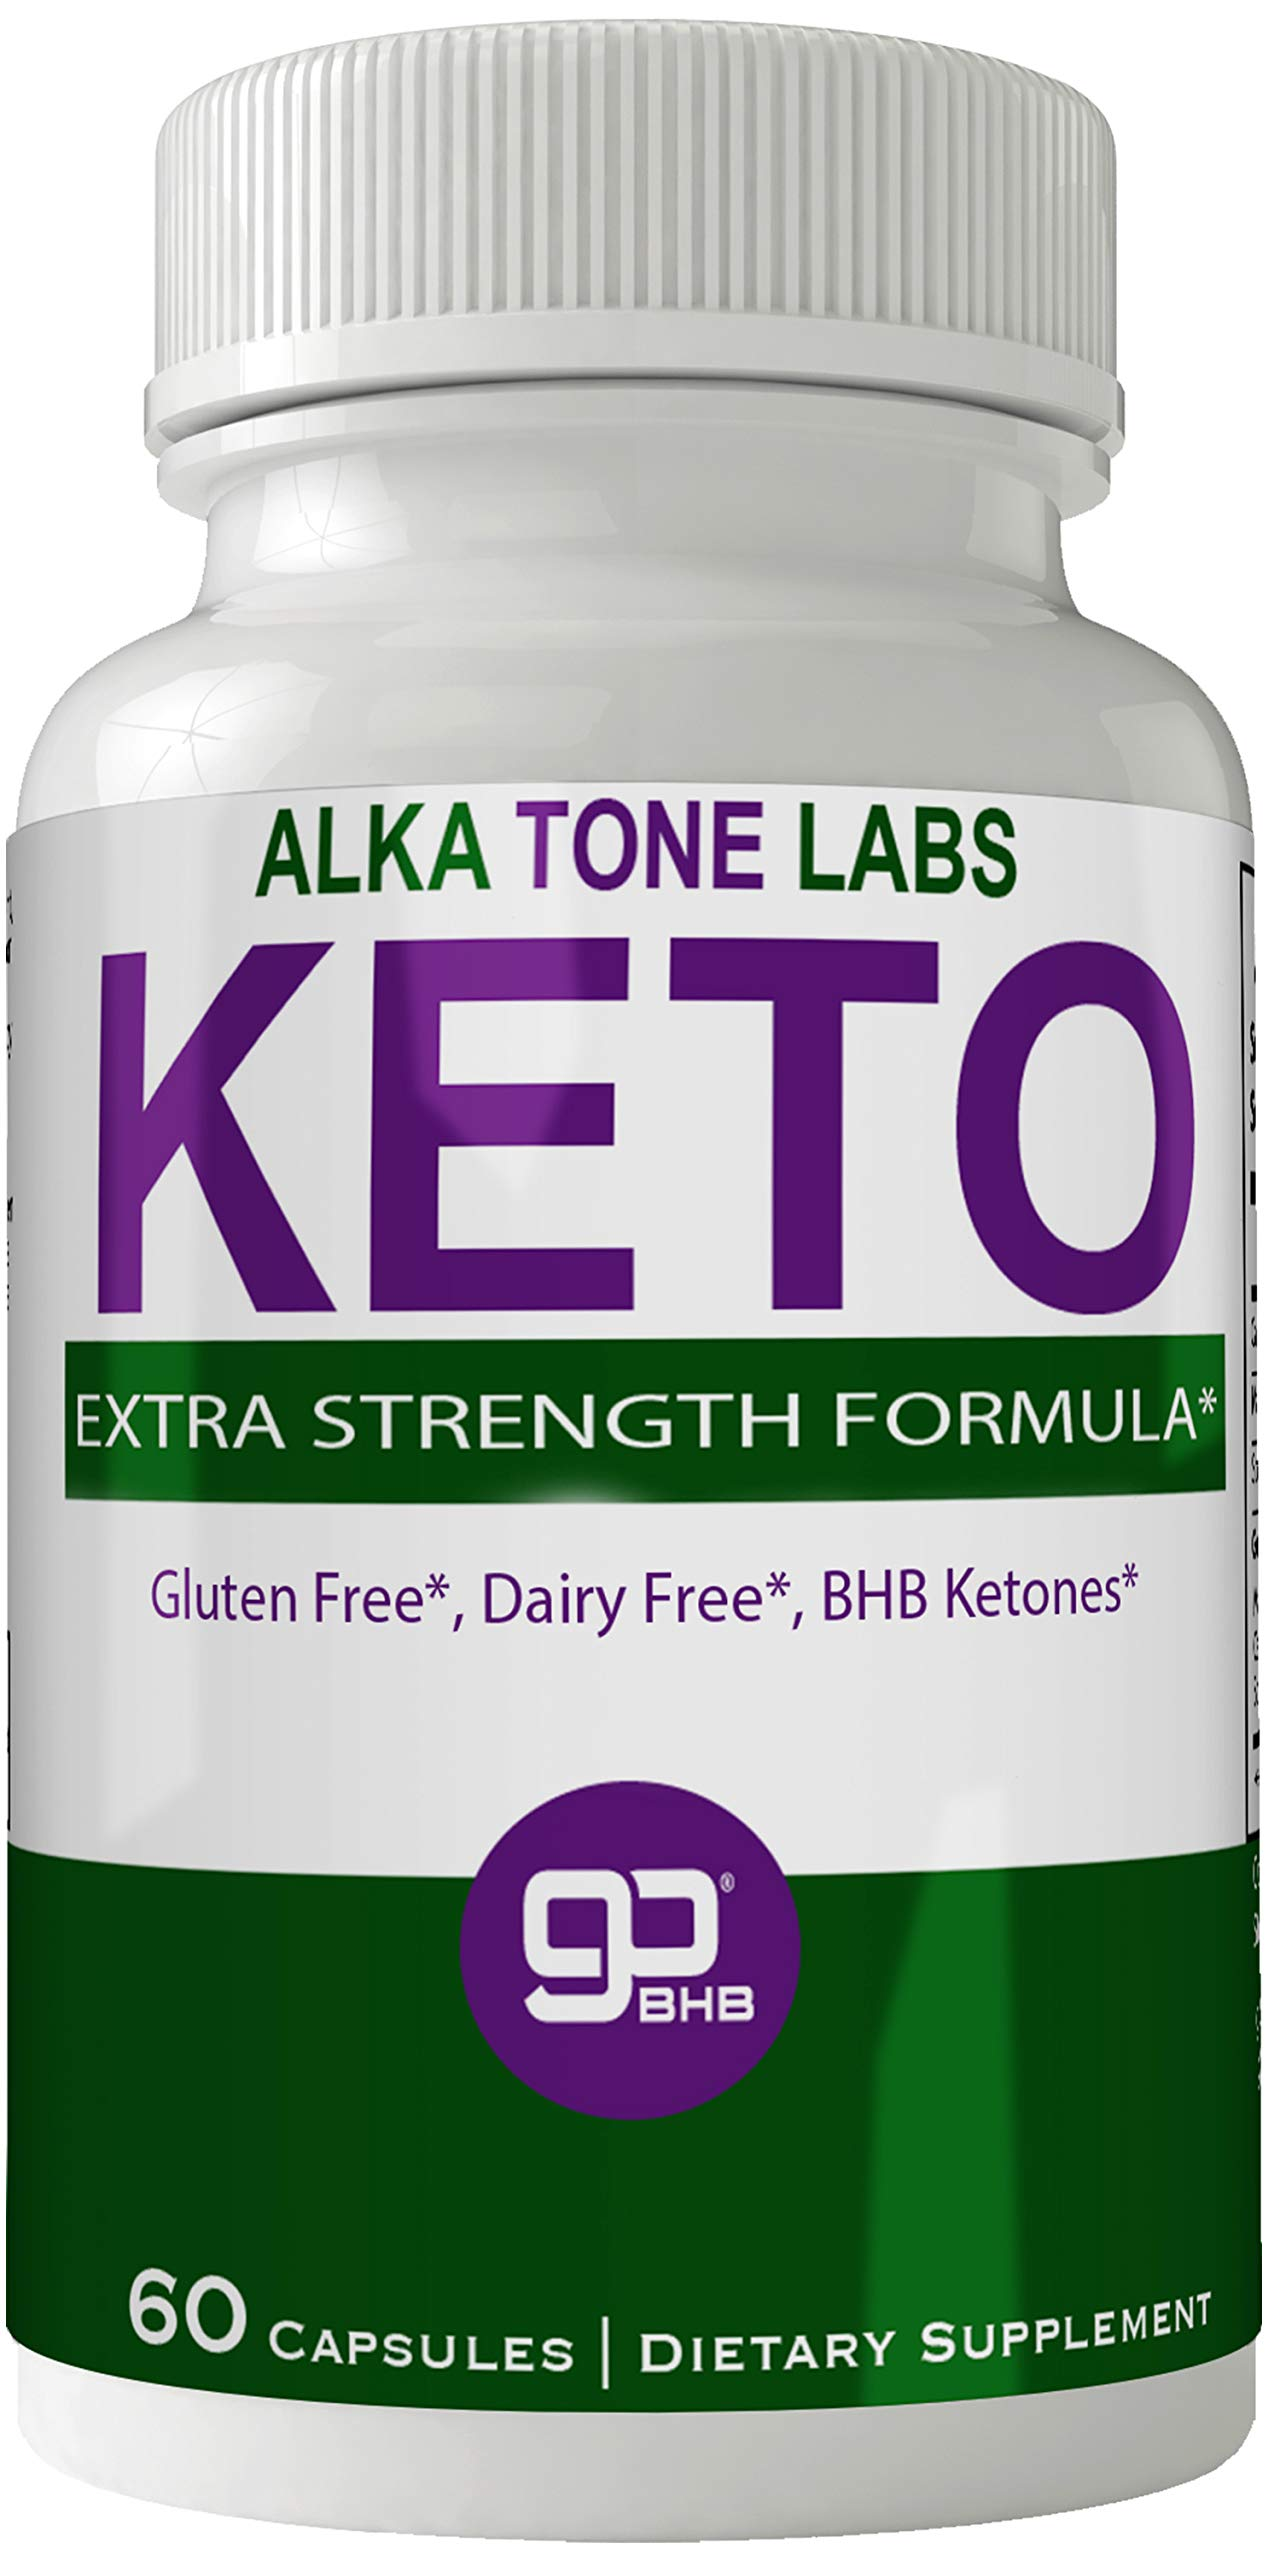 Alkatone Labs Keto BHB Weight Loss Pills, Advanced Natural Ketogenic Burn Fat Supplement, 800 mg Formula with New True Slim GO BHB Salts Formula, Advanced Appetite Suppressant Capsules ... by nutra4health LLC